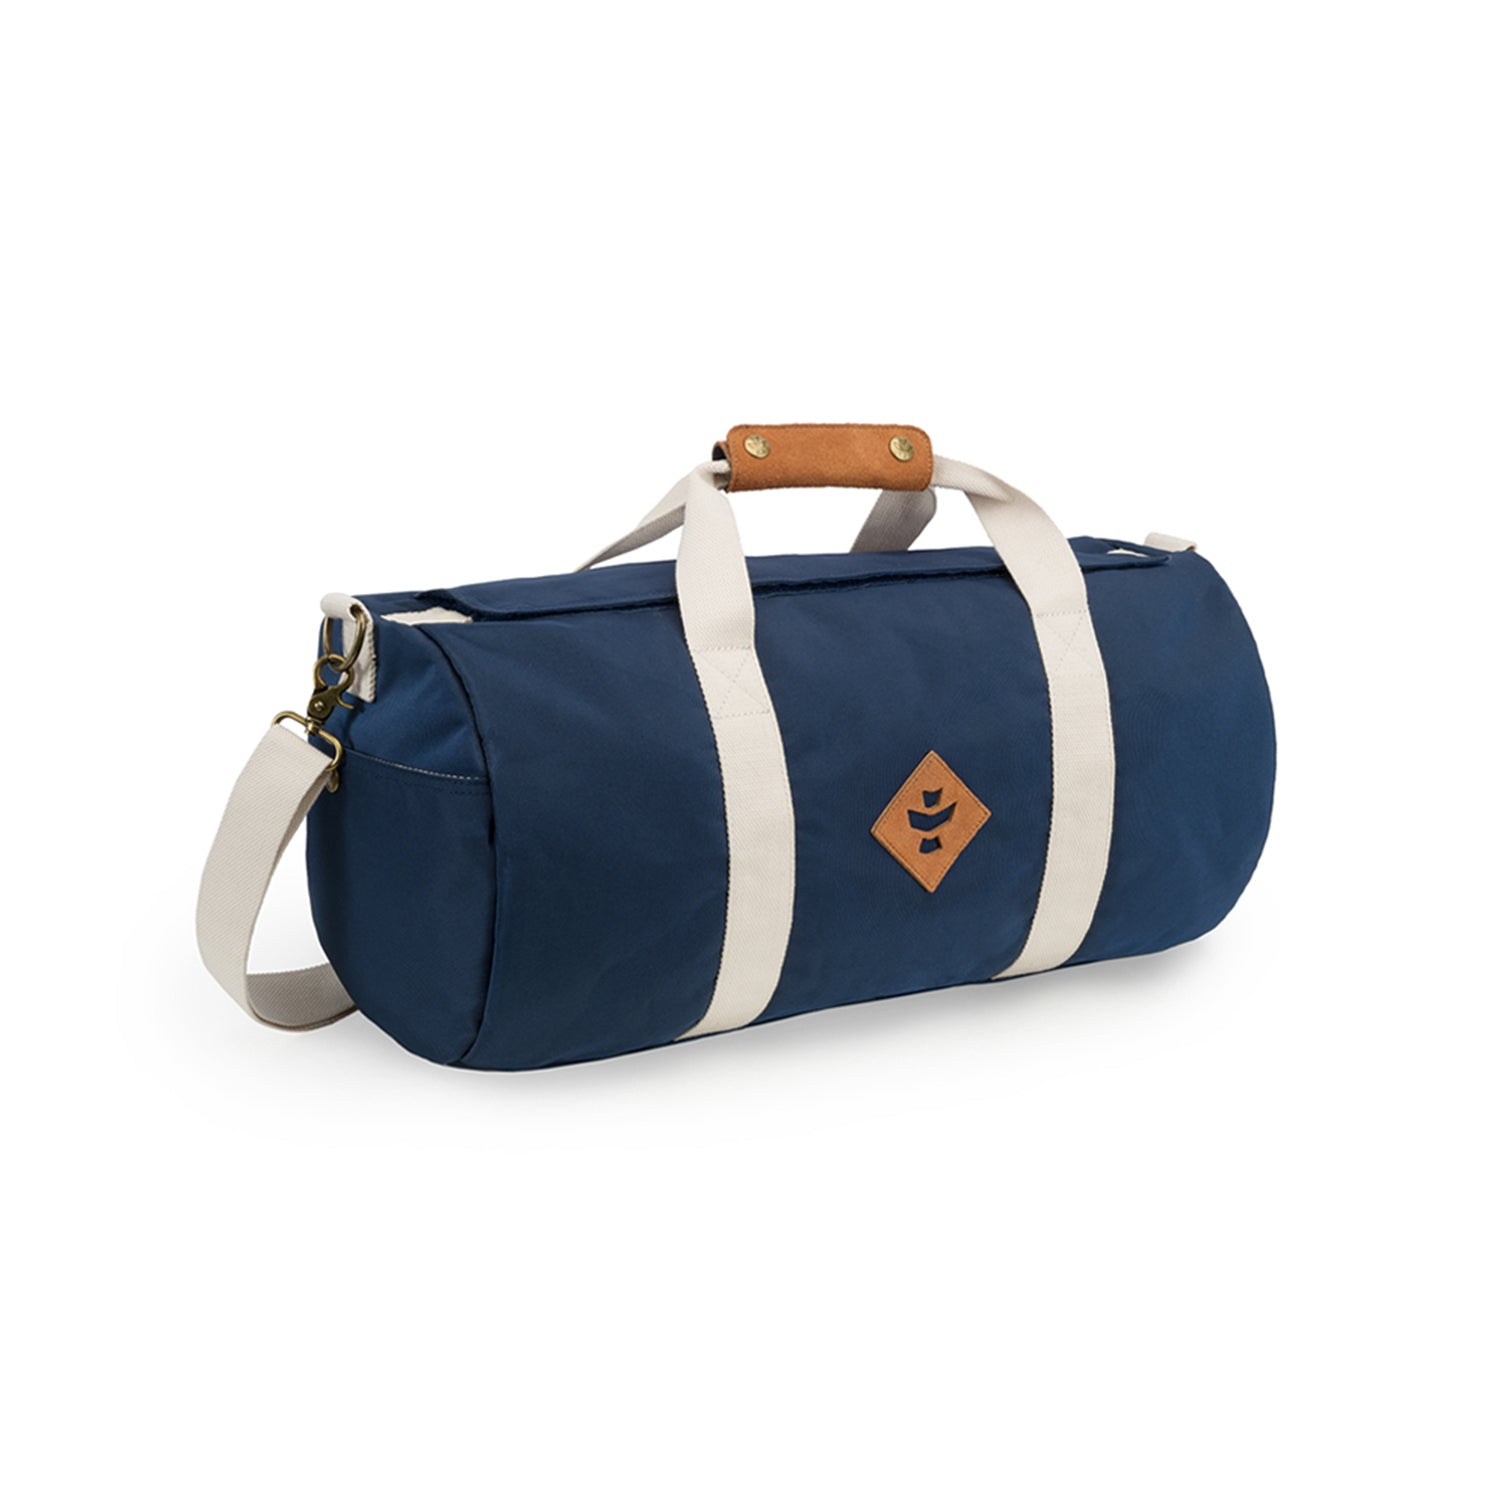 Navy Blue Nylon Smell Proof Water Resistant Small Duffle Bag